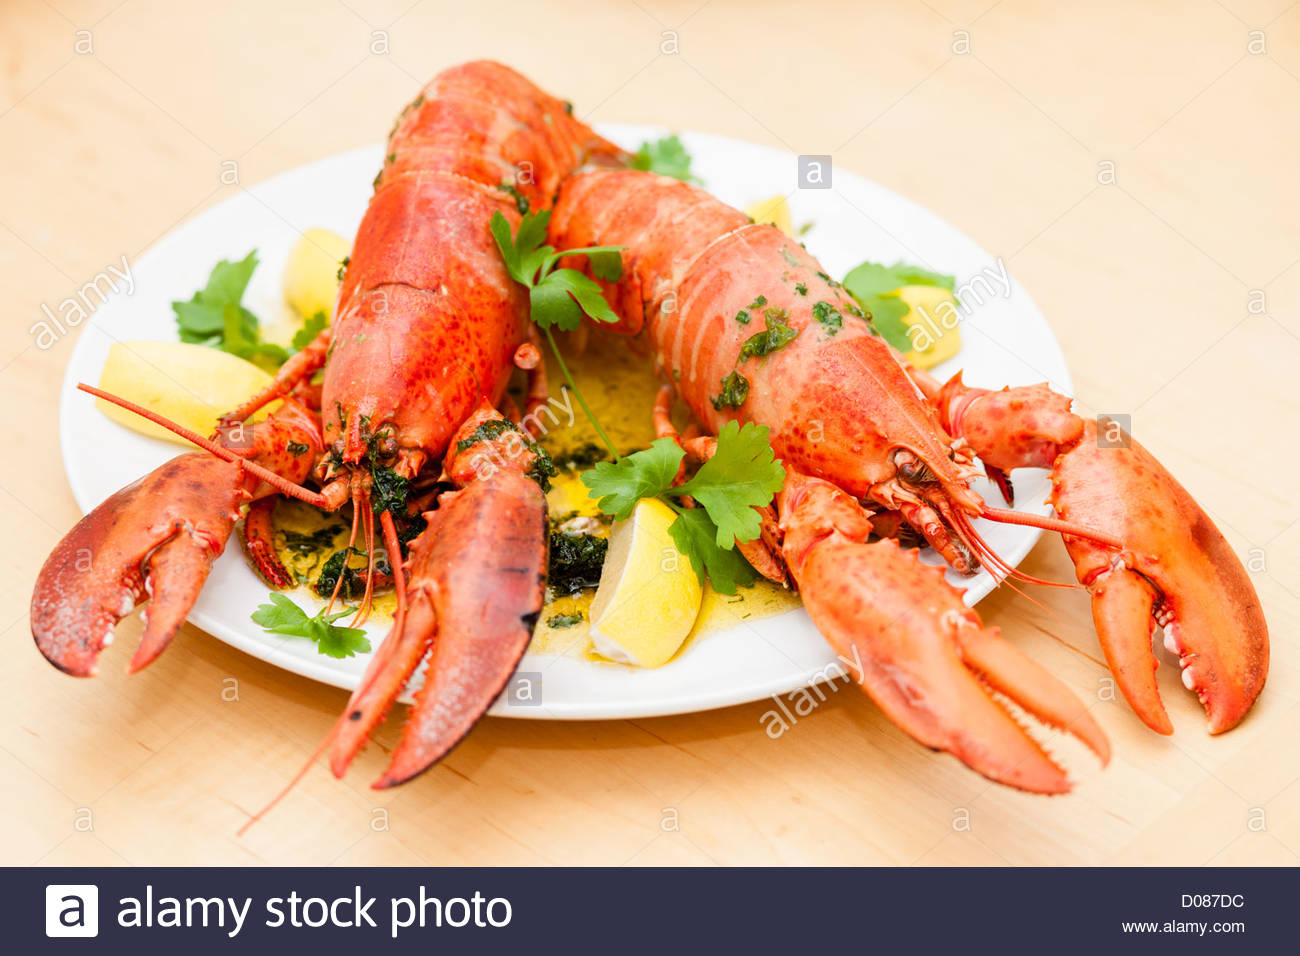 Cooked lobster dish - Stock Image